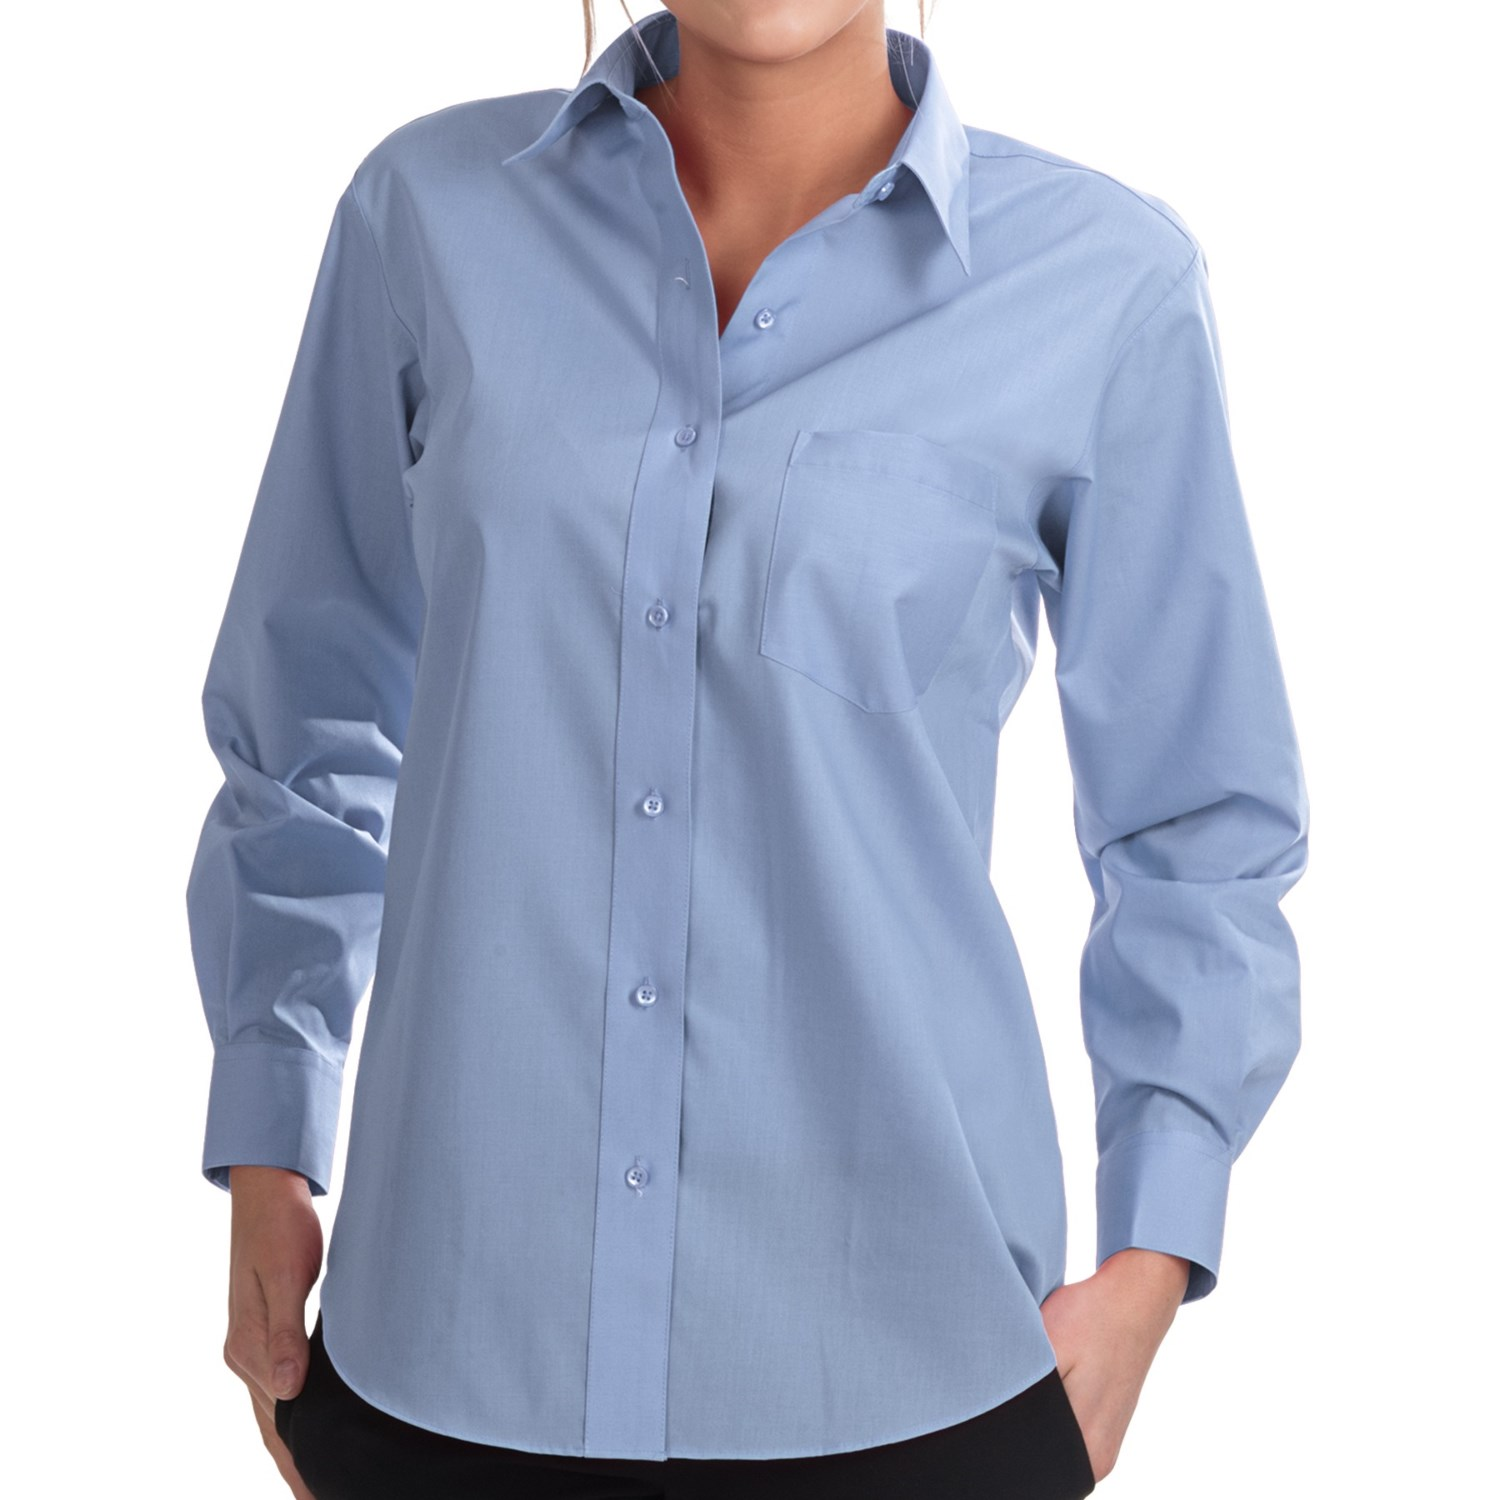 foxcroft wrinkle free essentials shirt long sleeve for